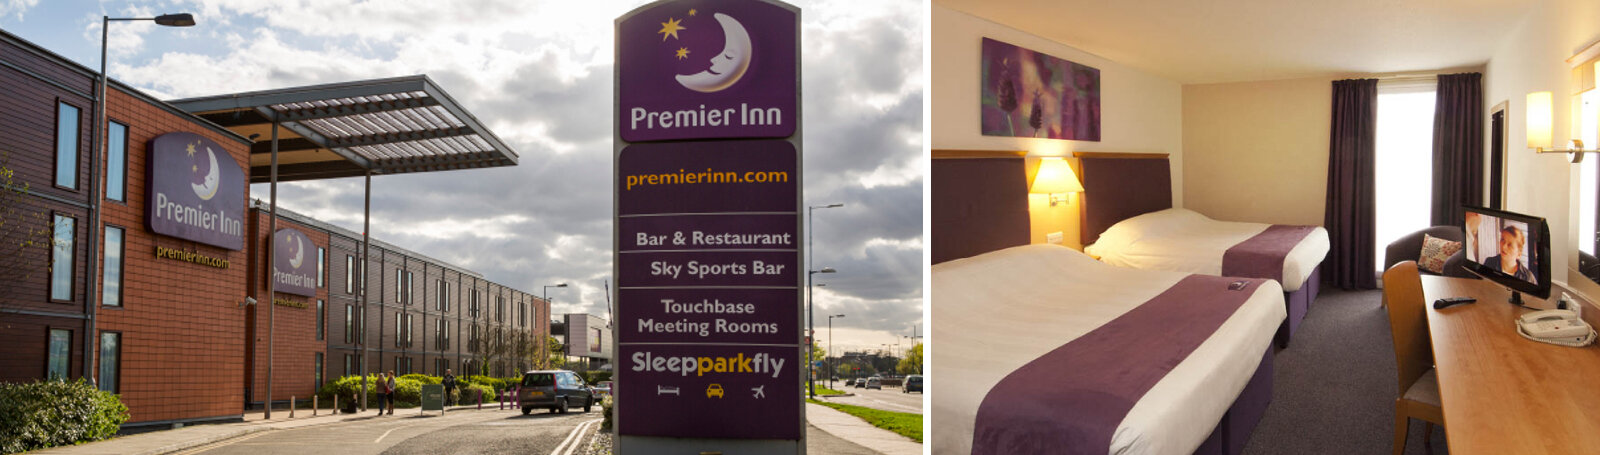 Premier Inn at Legoland Windsor